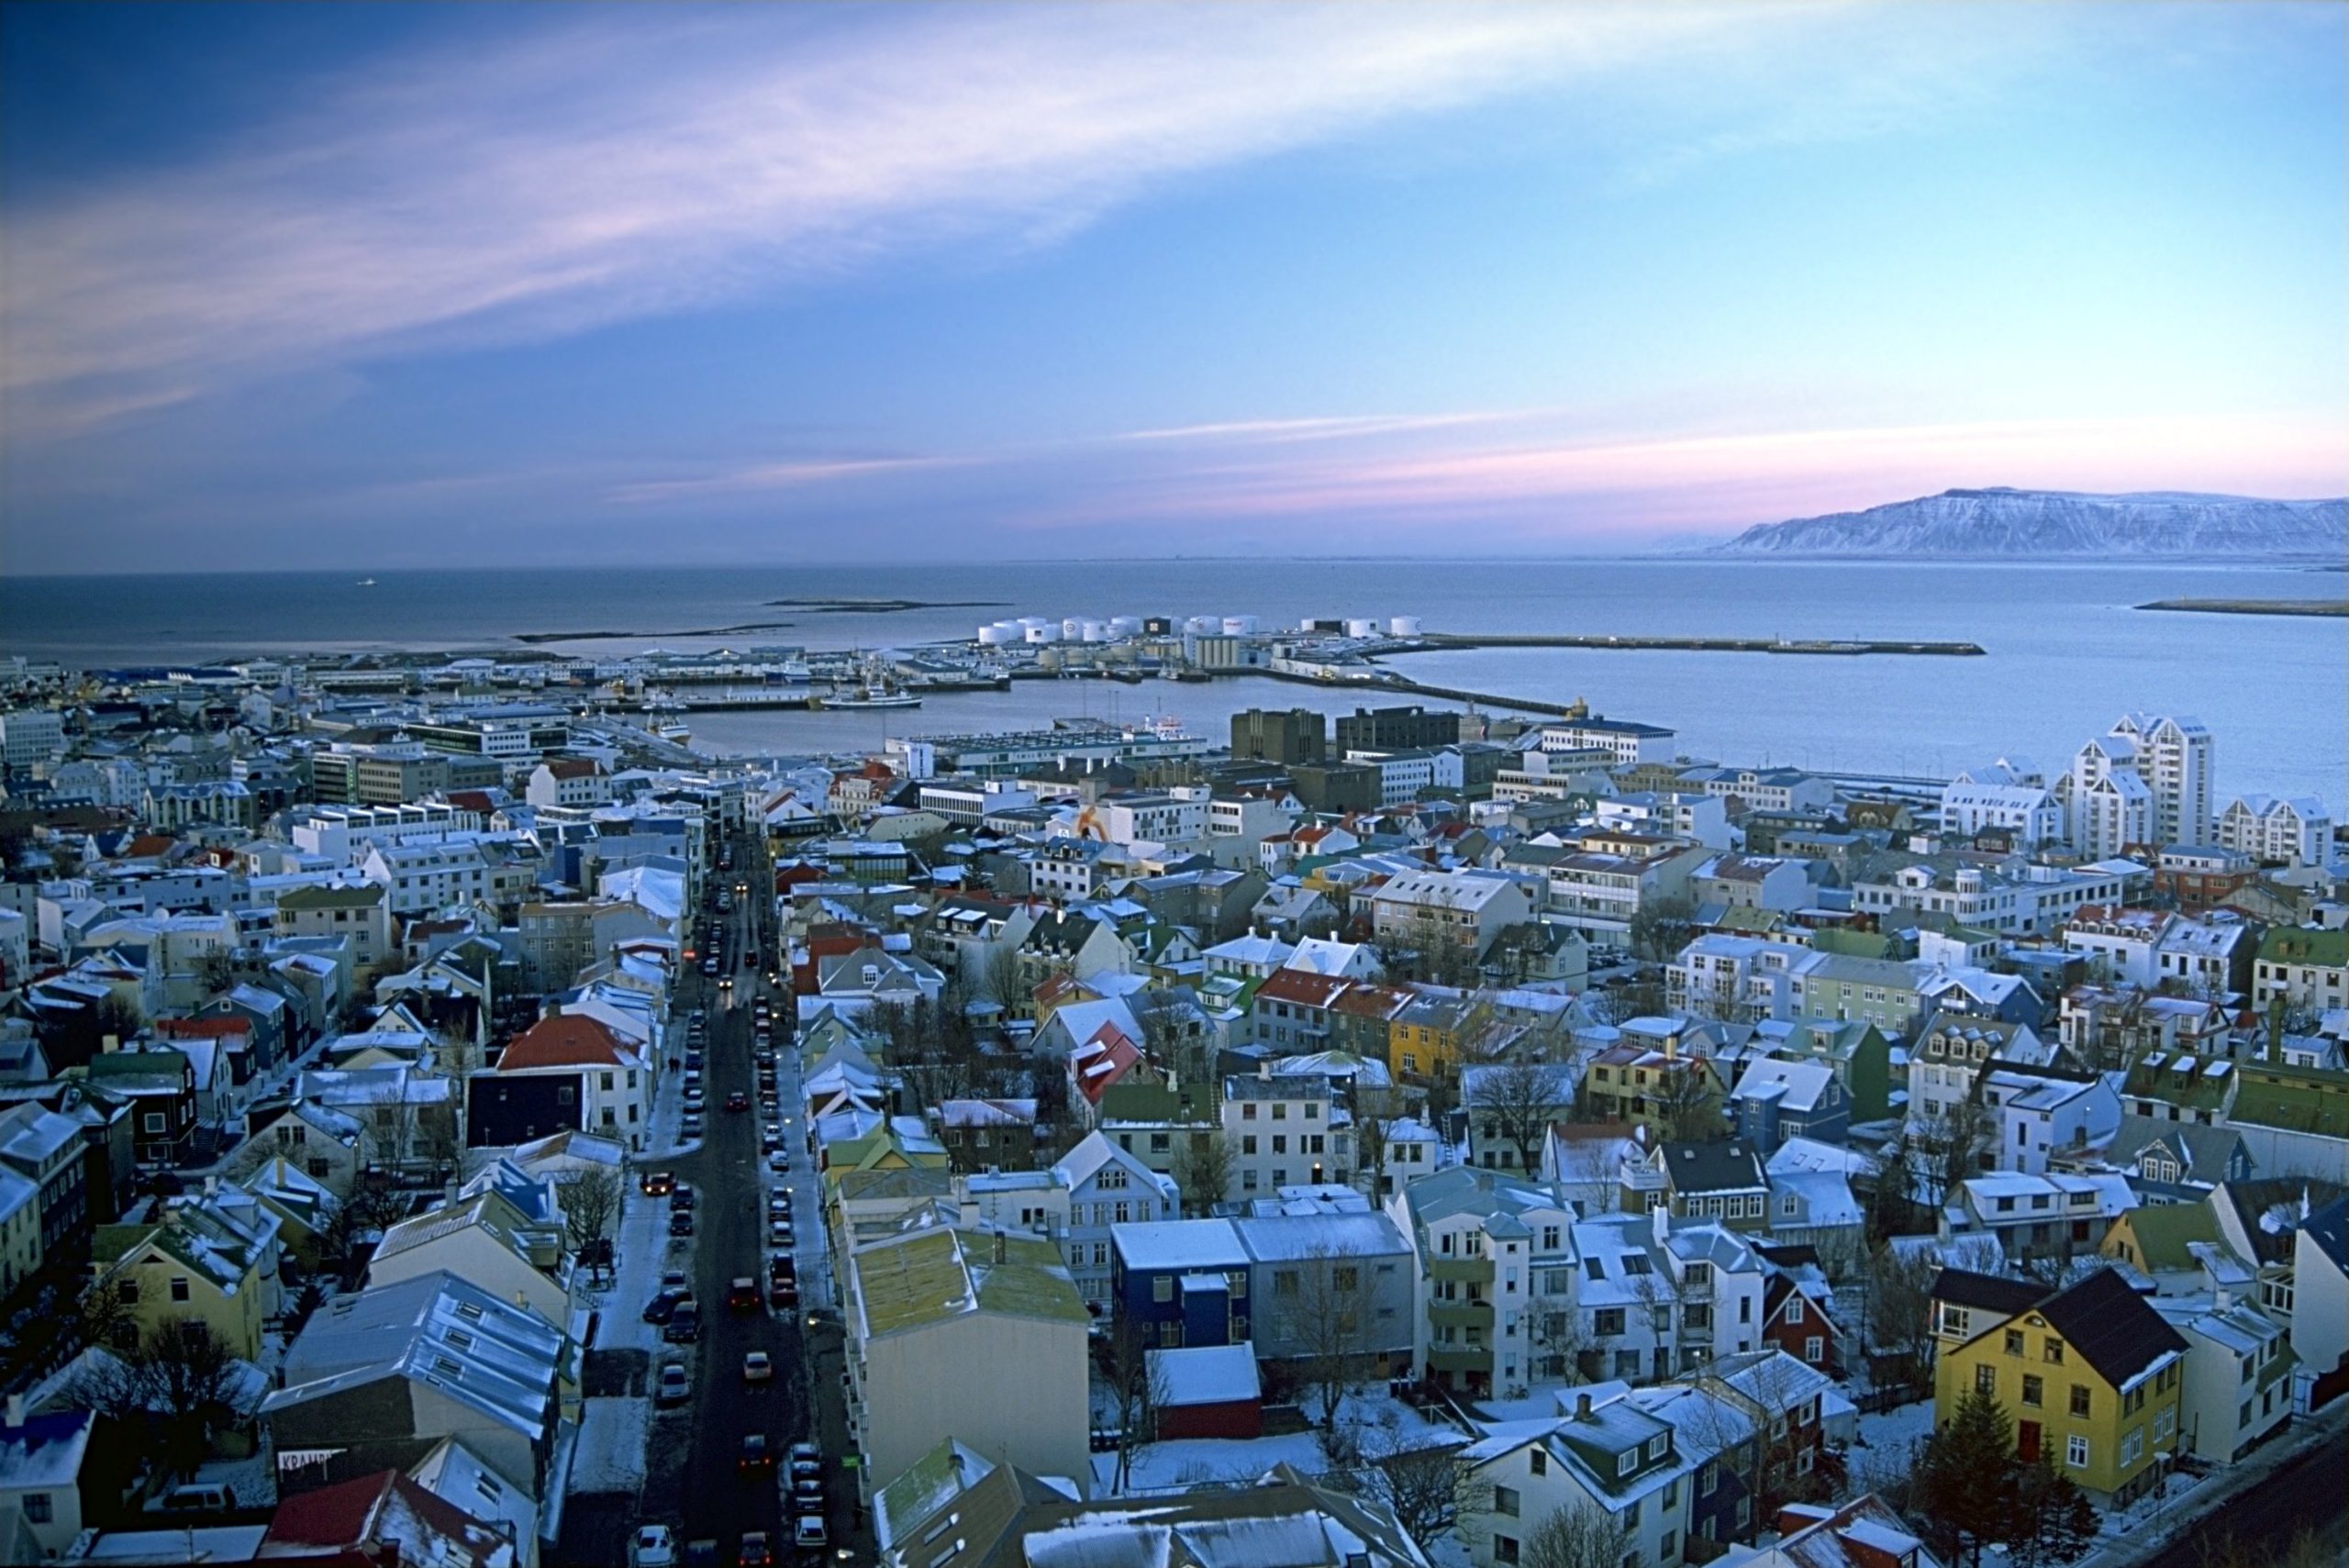 Iceland was in top spot (photo credit: Andreas Tille under CC)